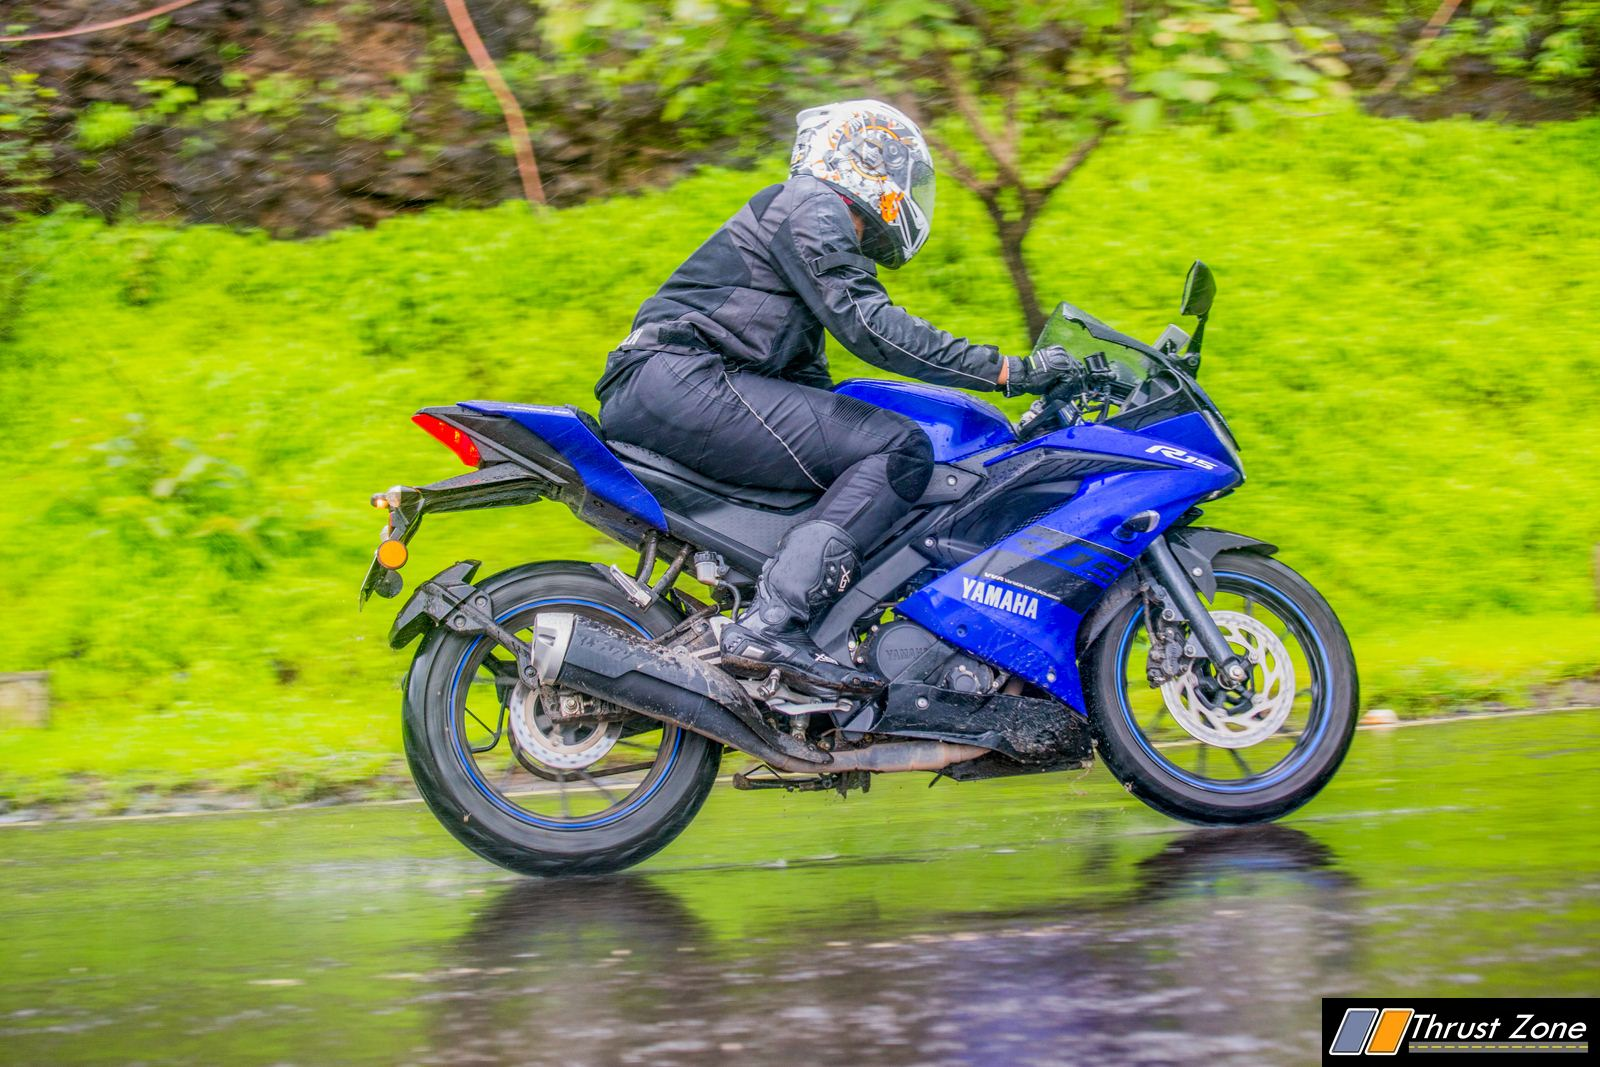 https://www.thrustzone.com/wp-content/uploads/2018/07/Yamaha-R15-V3-Review-Road-Test-8.jpg